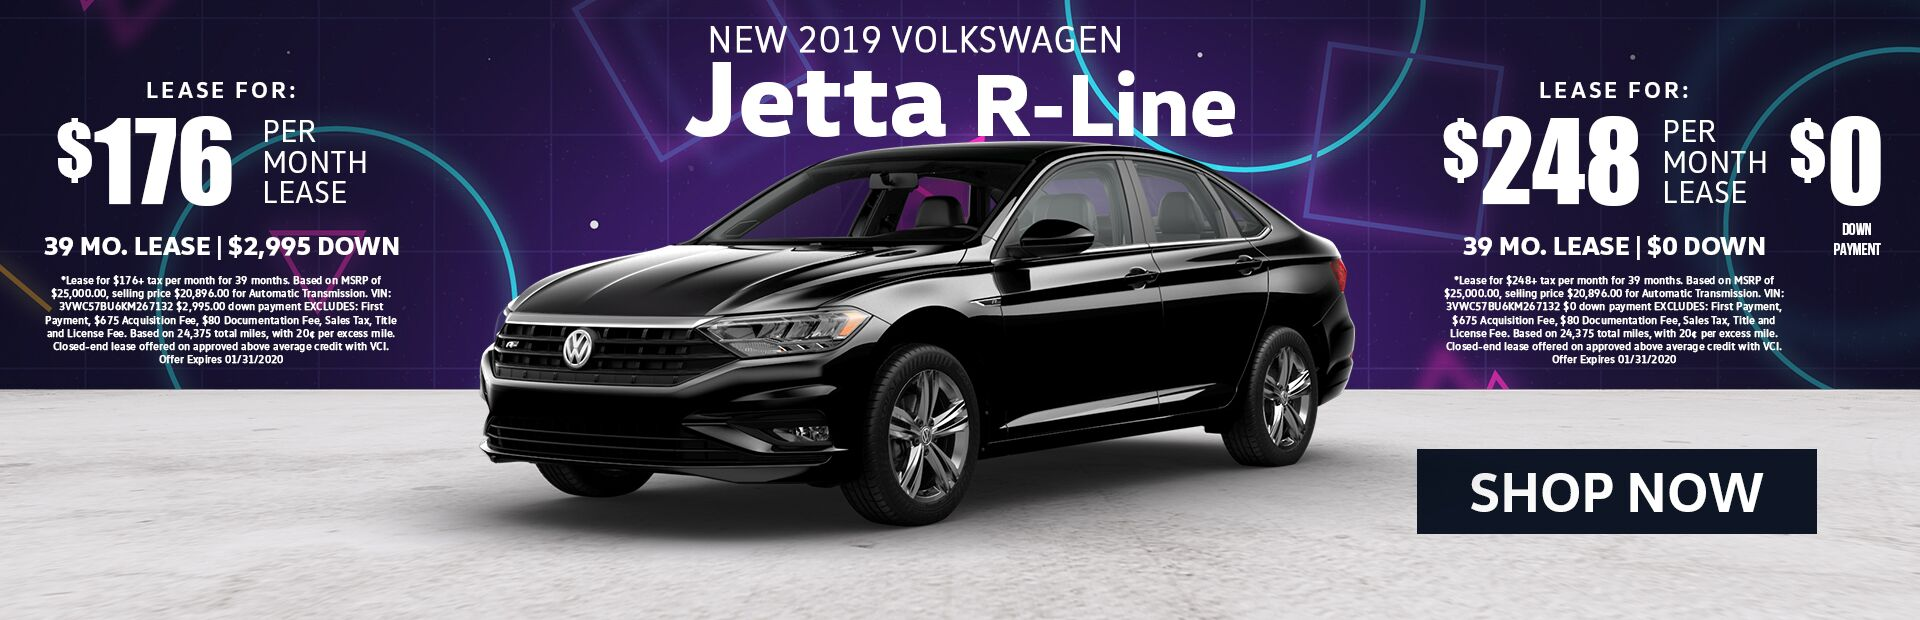 New 2019 Jetta R Line Lease Specials